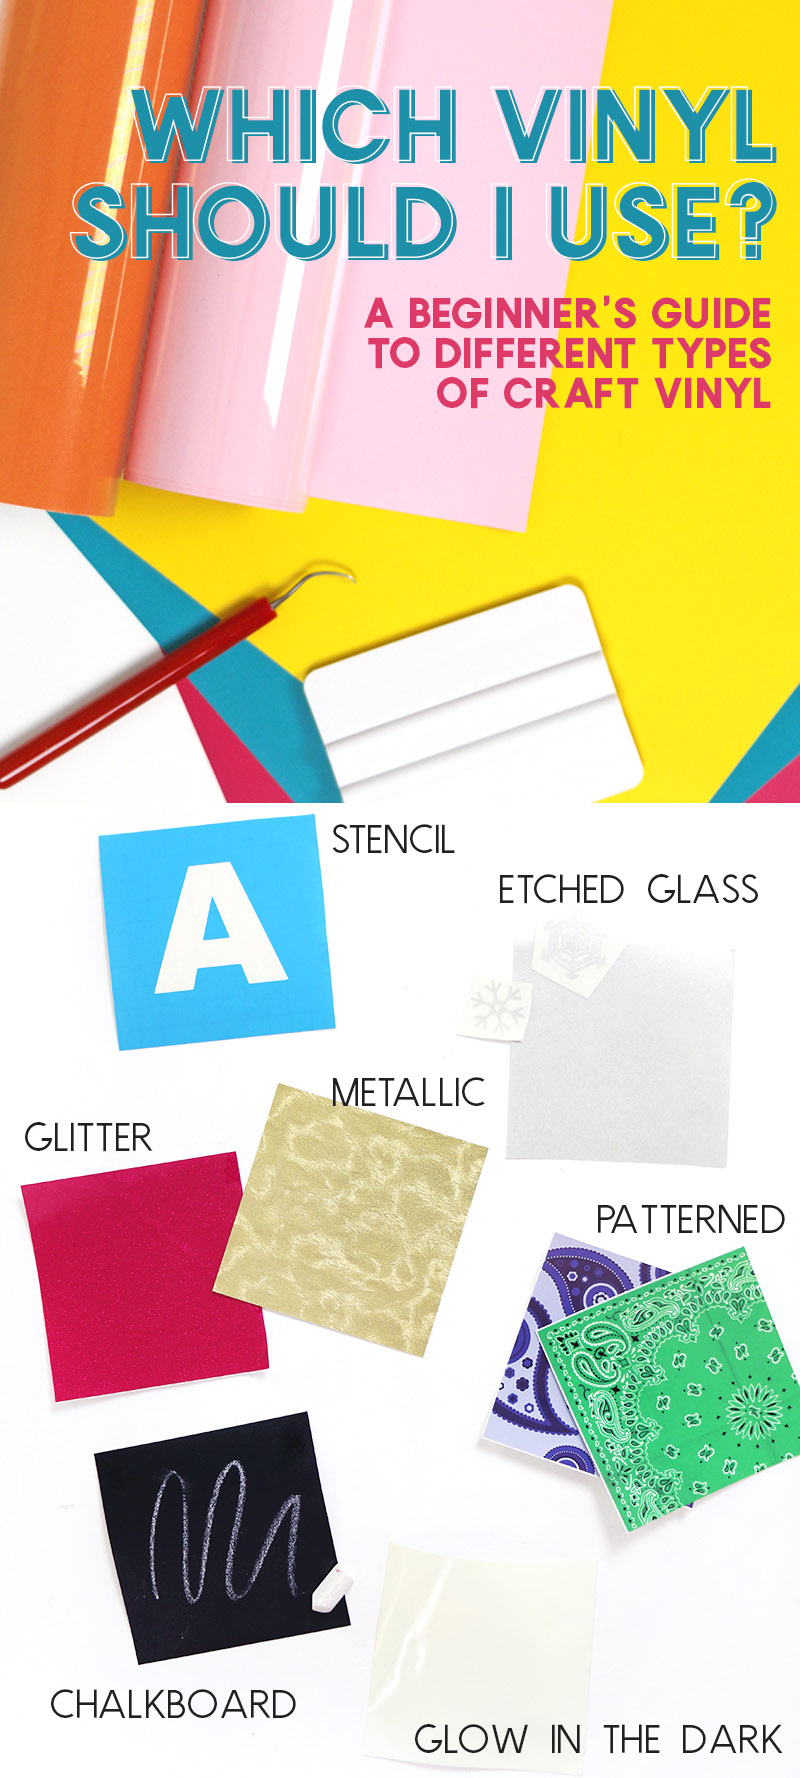 which vinyl should I use? Learn all about different types of vinyl to use with your Silhouette or Cricut and find out which one is best for the project you are working on